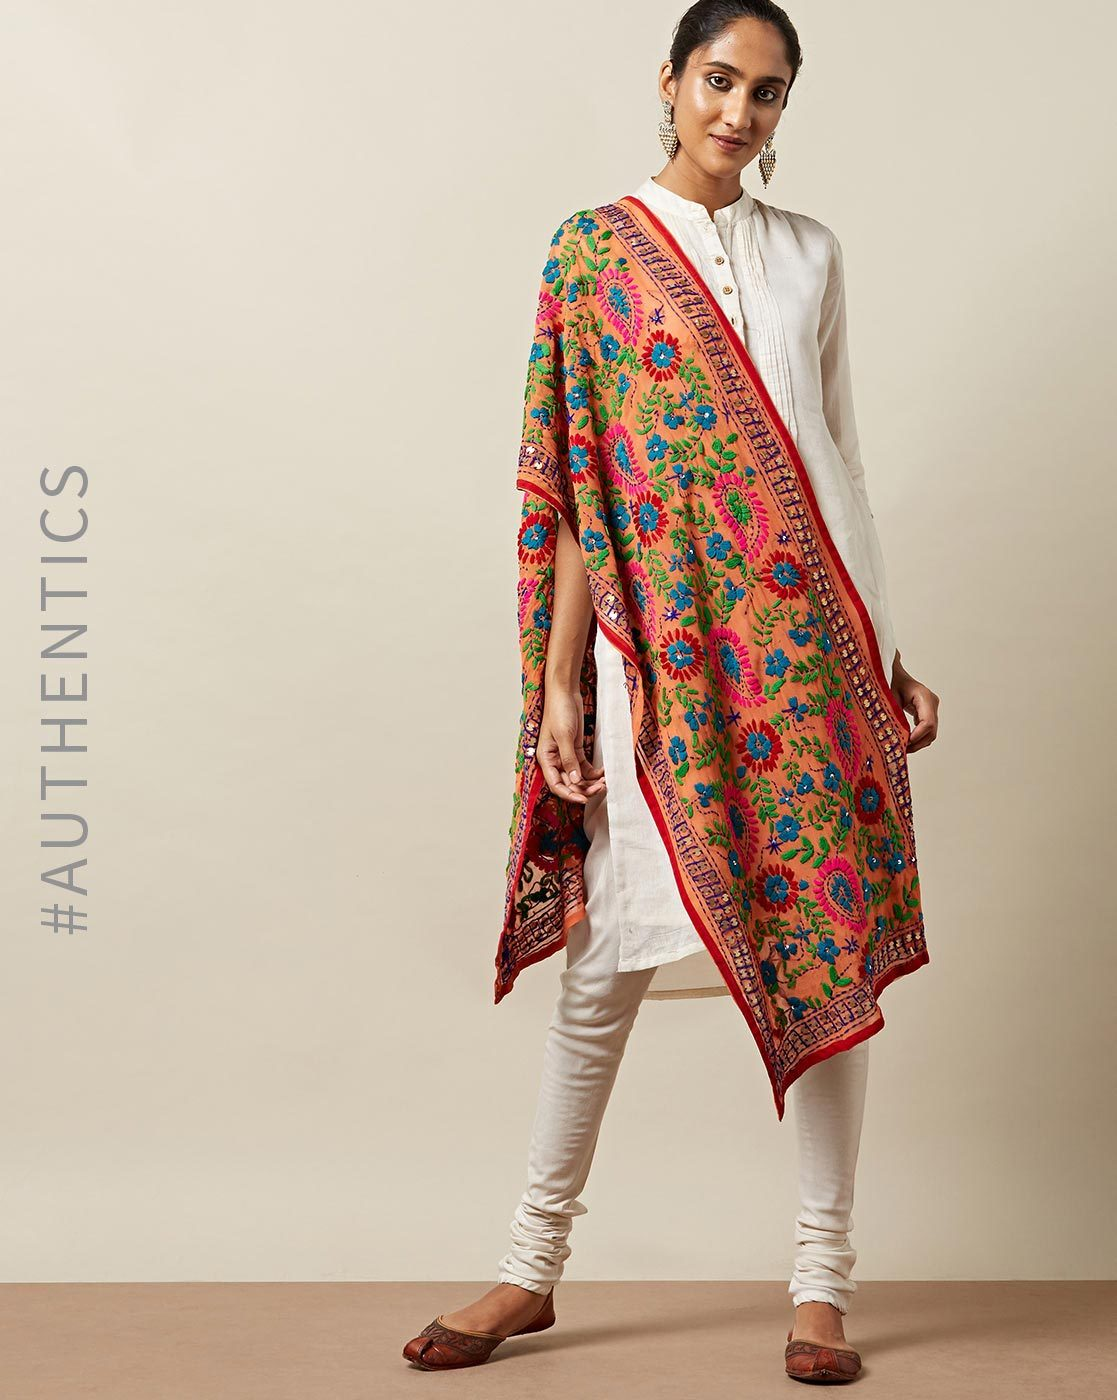 1-indie-picks-phulkari-dupatta-to-wear-with-punjabi-suit